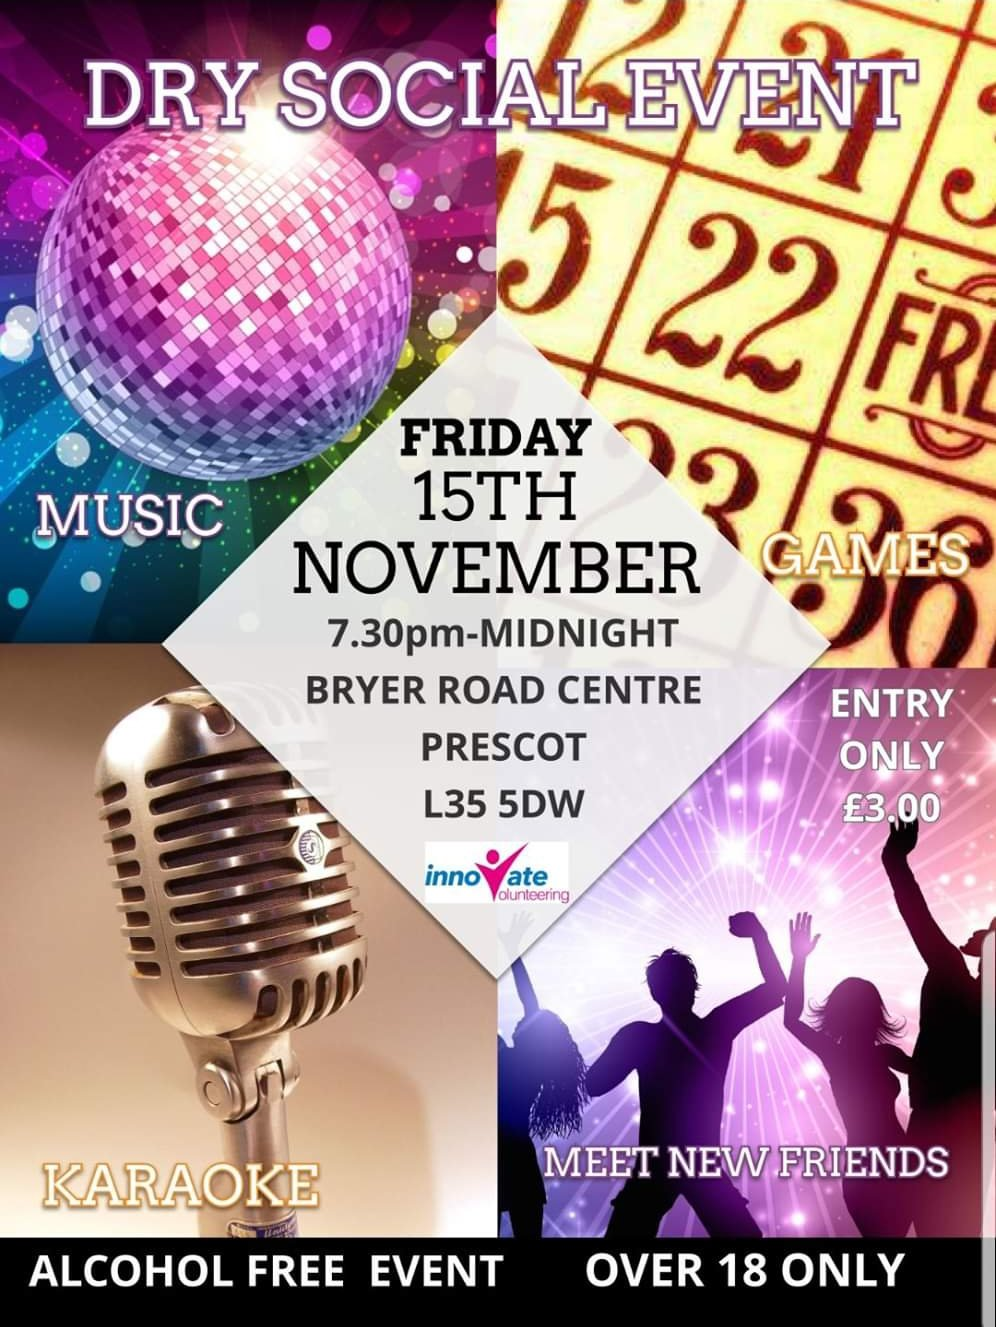 Dry Social Event - Alcohol Free event for over 18's